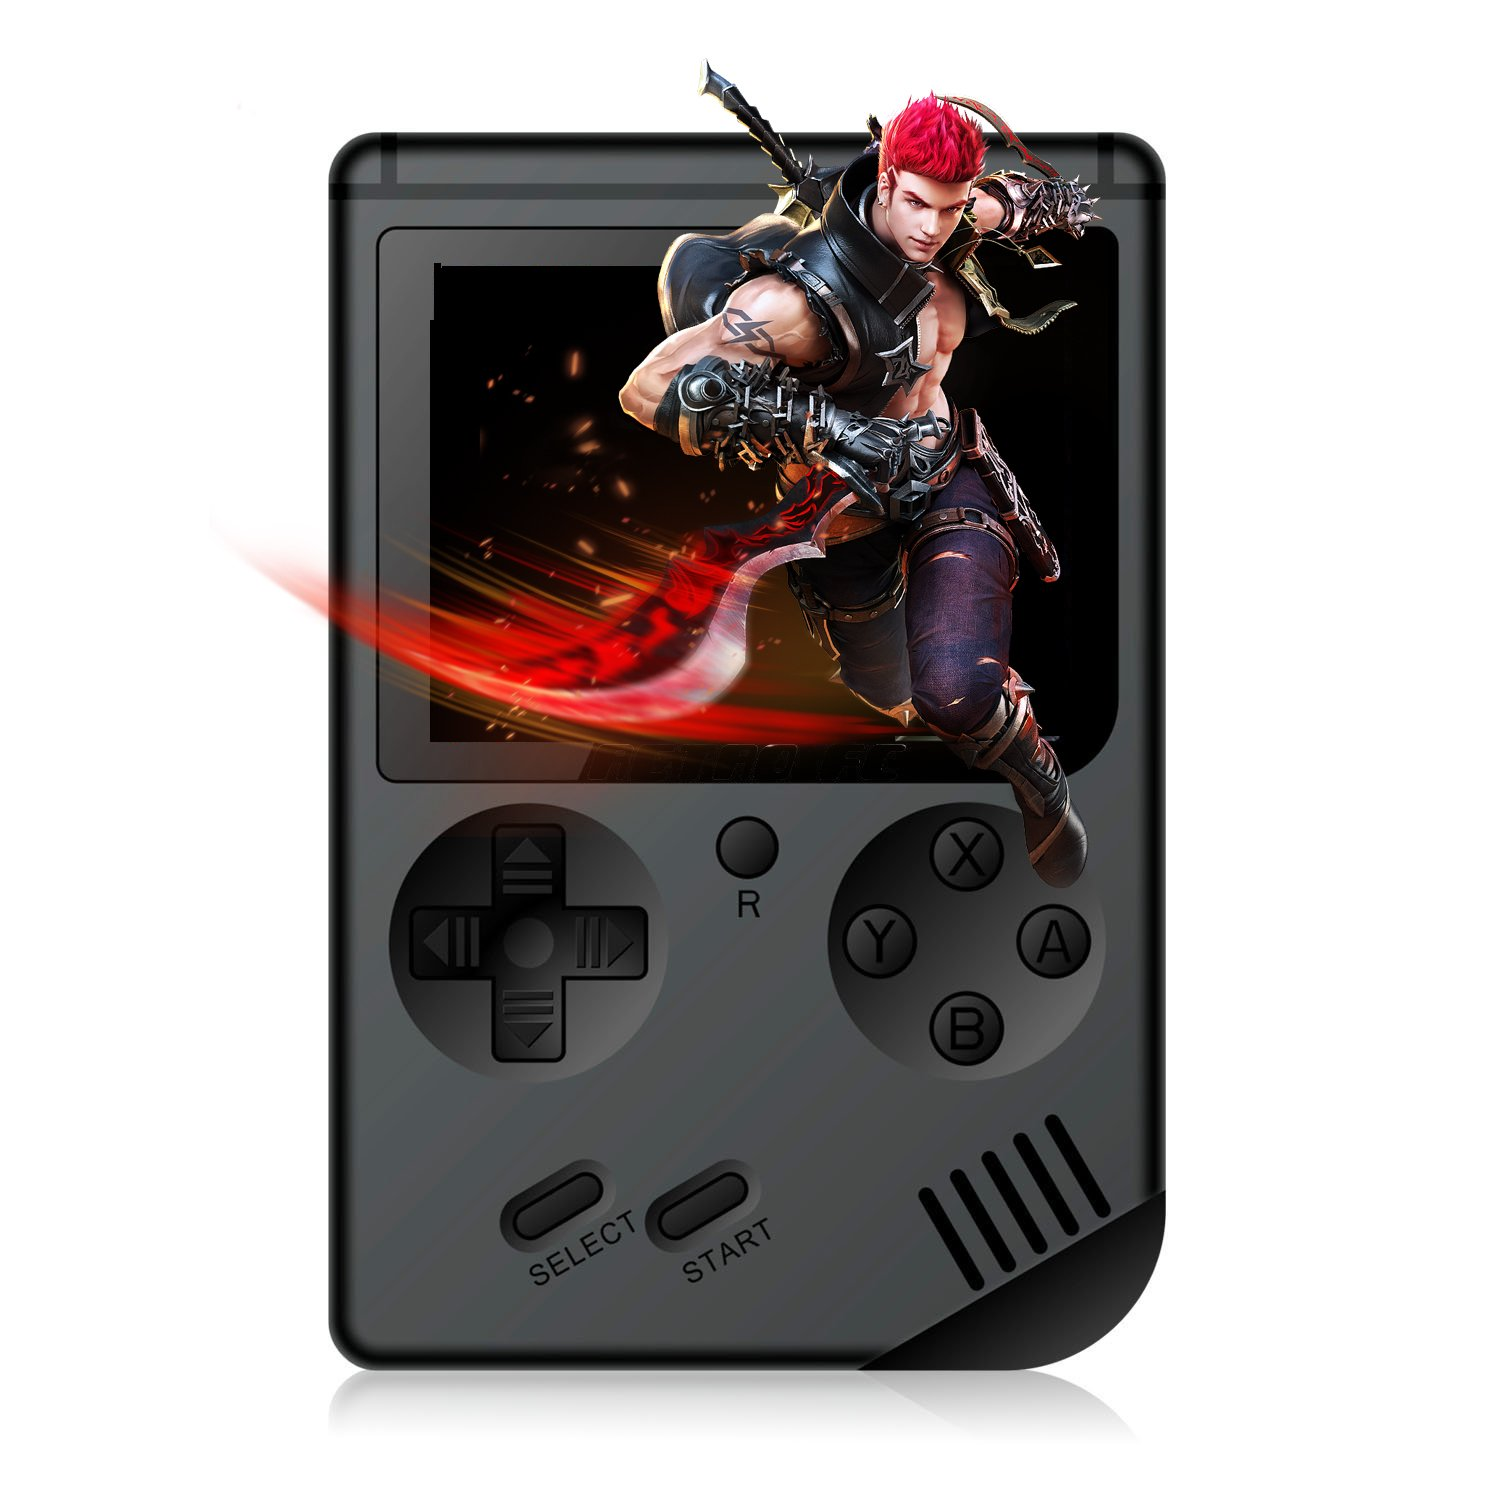 Spmywin Handheld Game Console, 3 Inch Retro Game Player 168 Classic Games,Rechargeable Battery,Birthday Presents for Children.